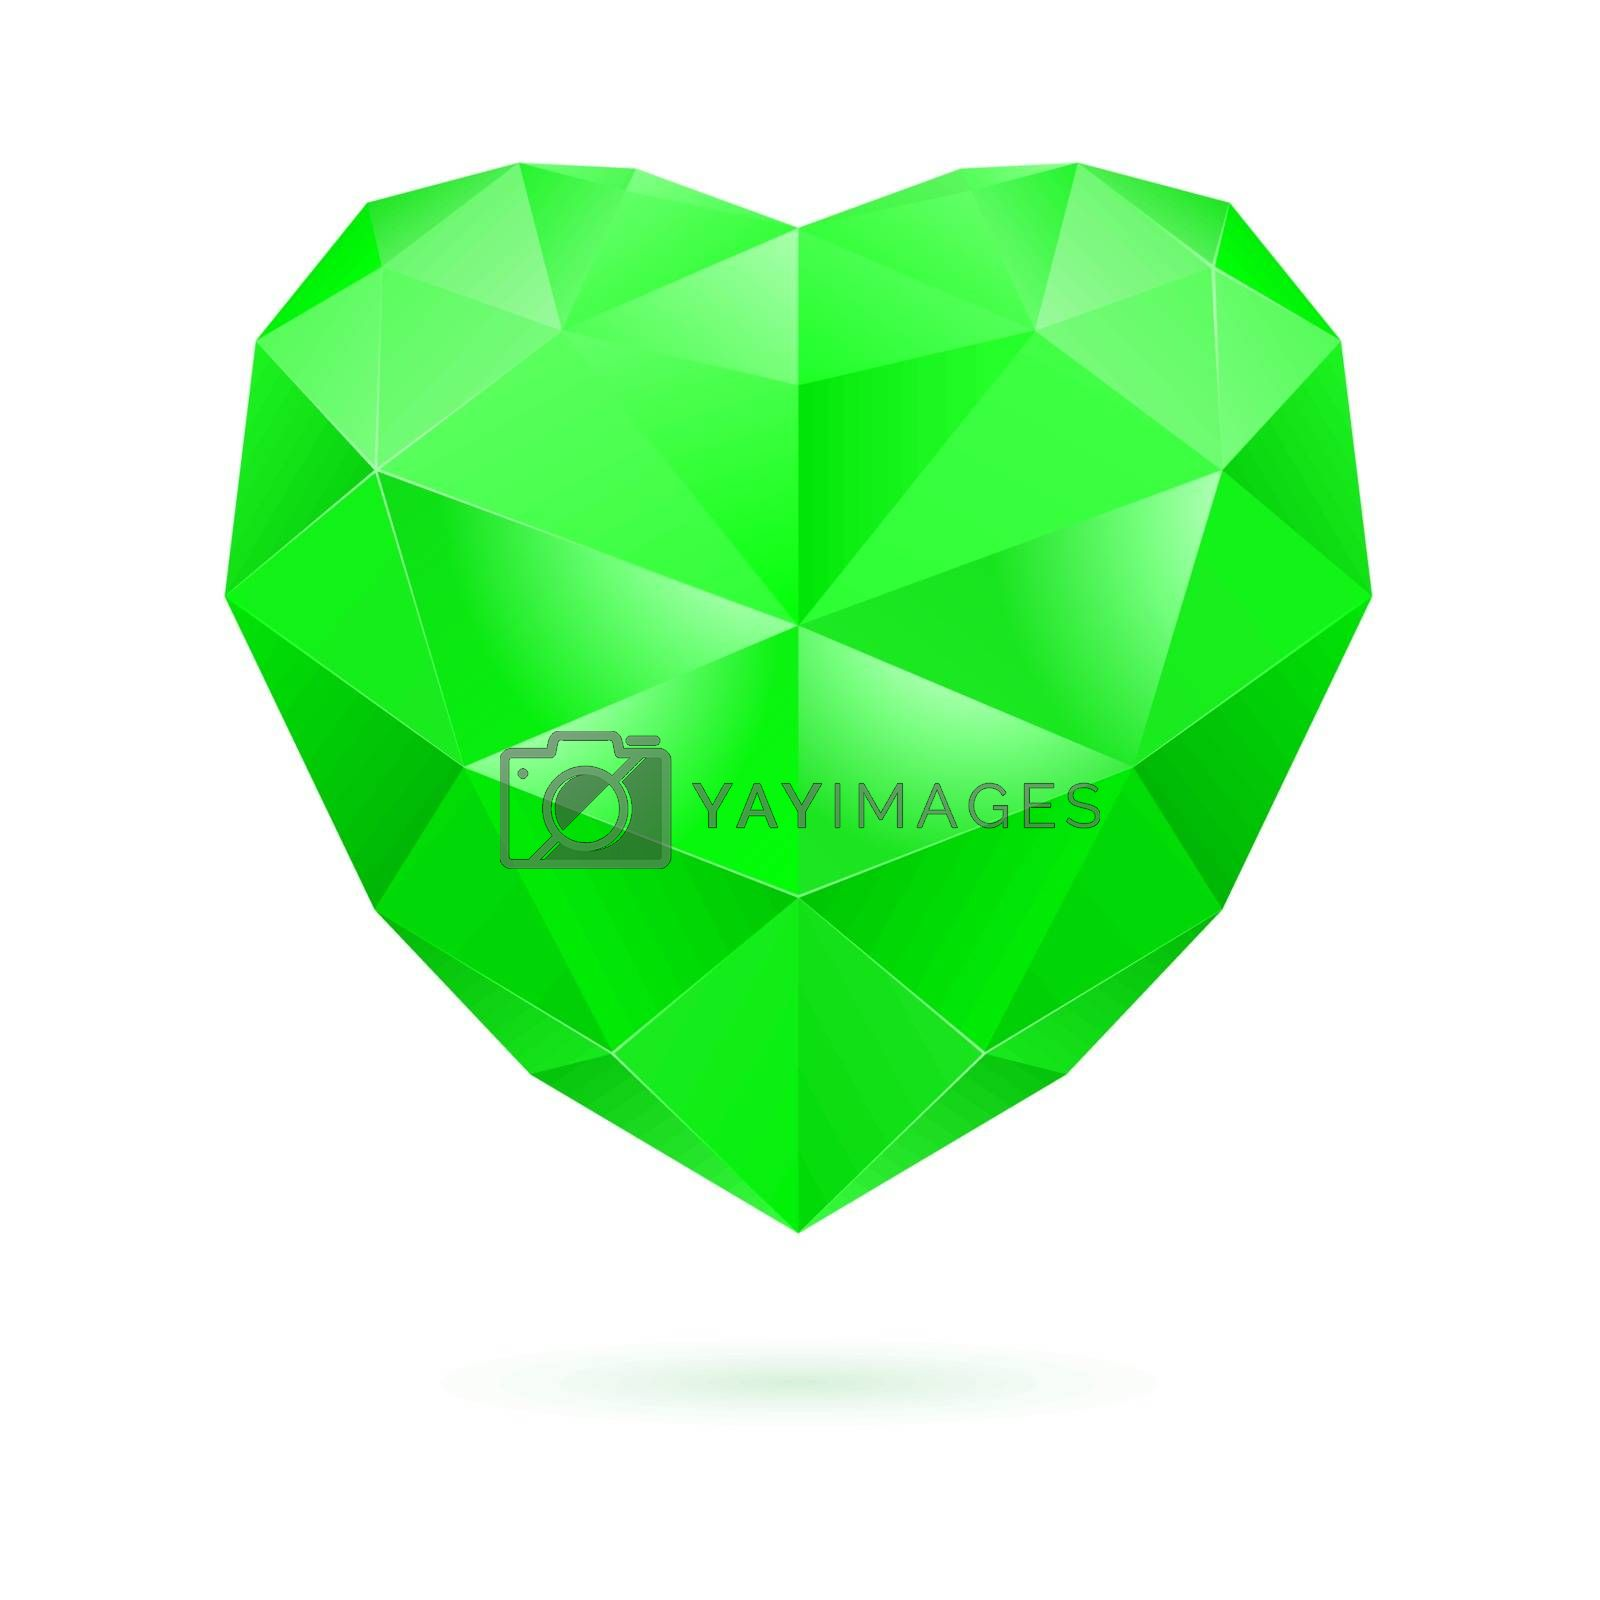 Royalty free image of Green polygon heart by dvarg